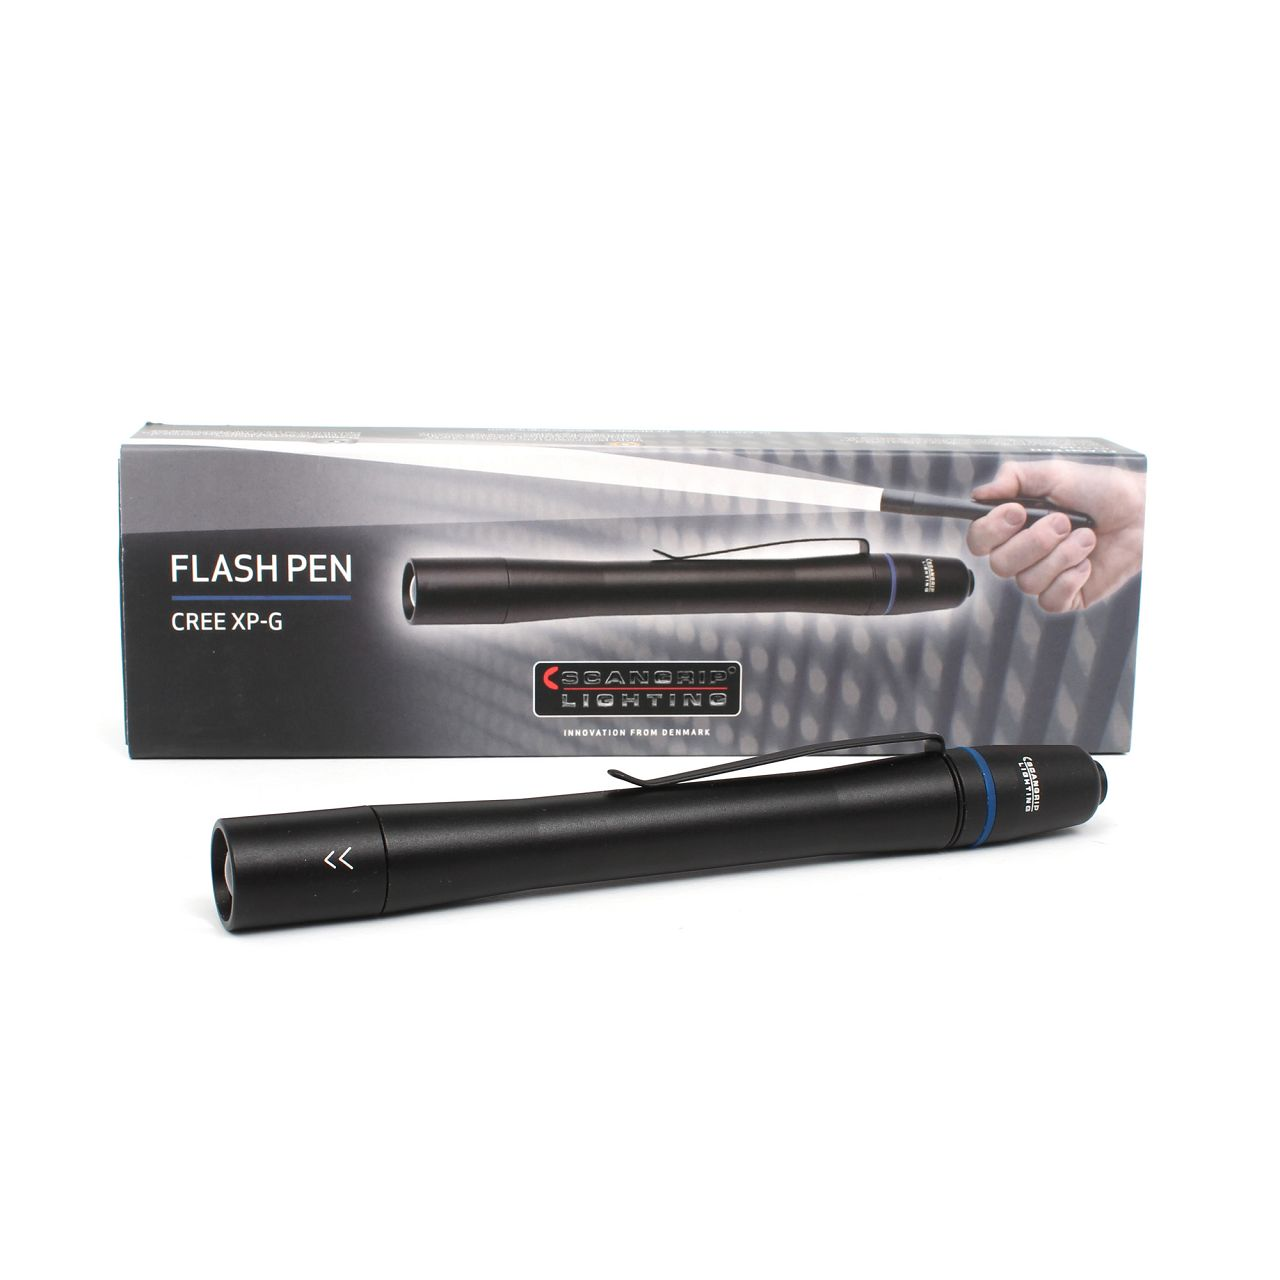 SCANGRIP 03.5110 FLASH PEN 1W LED Taschenlampe Stiftlampe mit Fokusfunktion